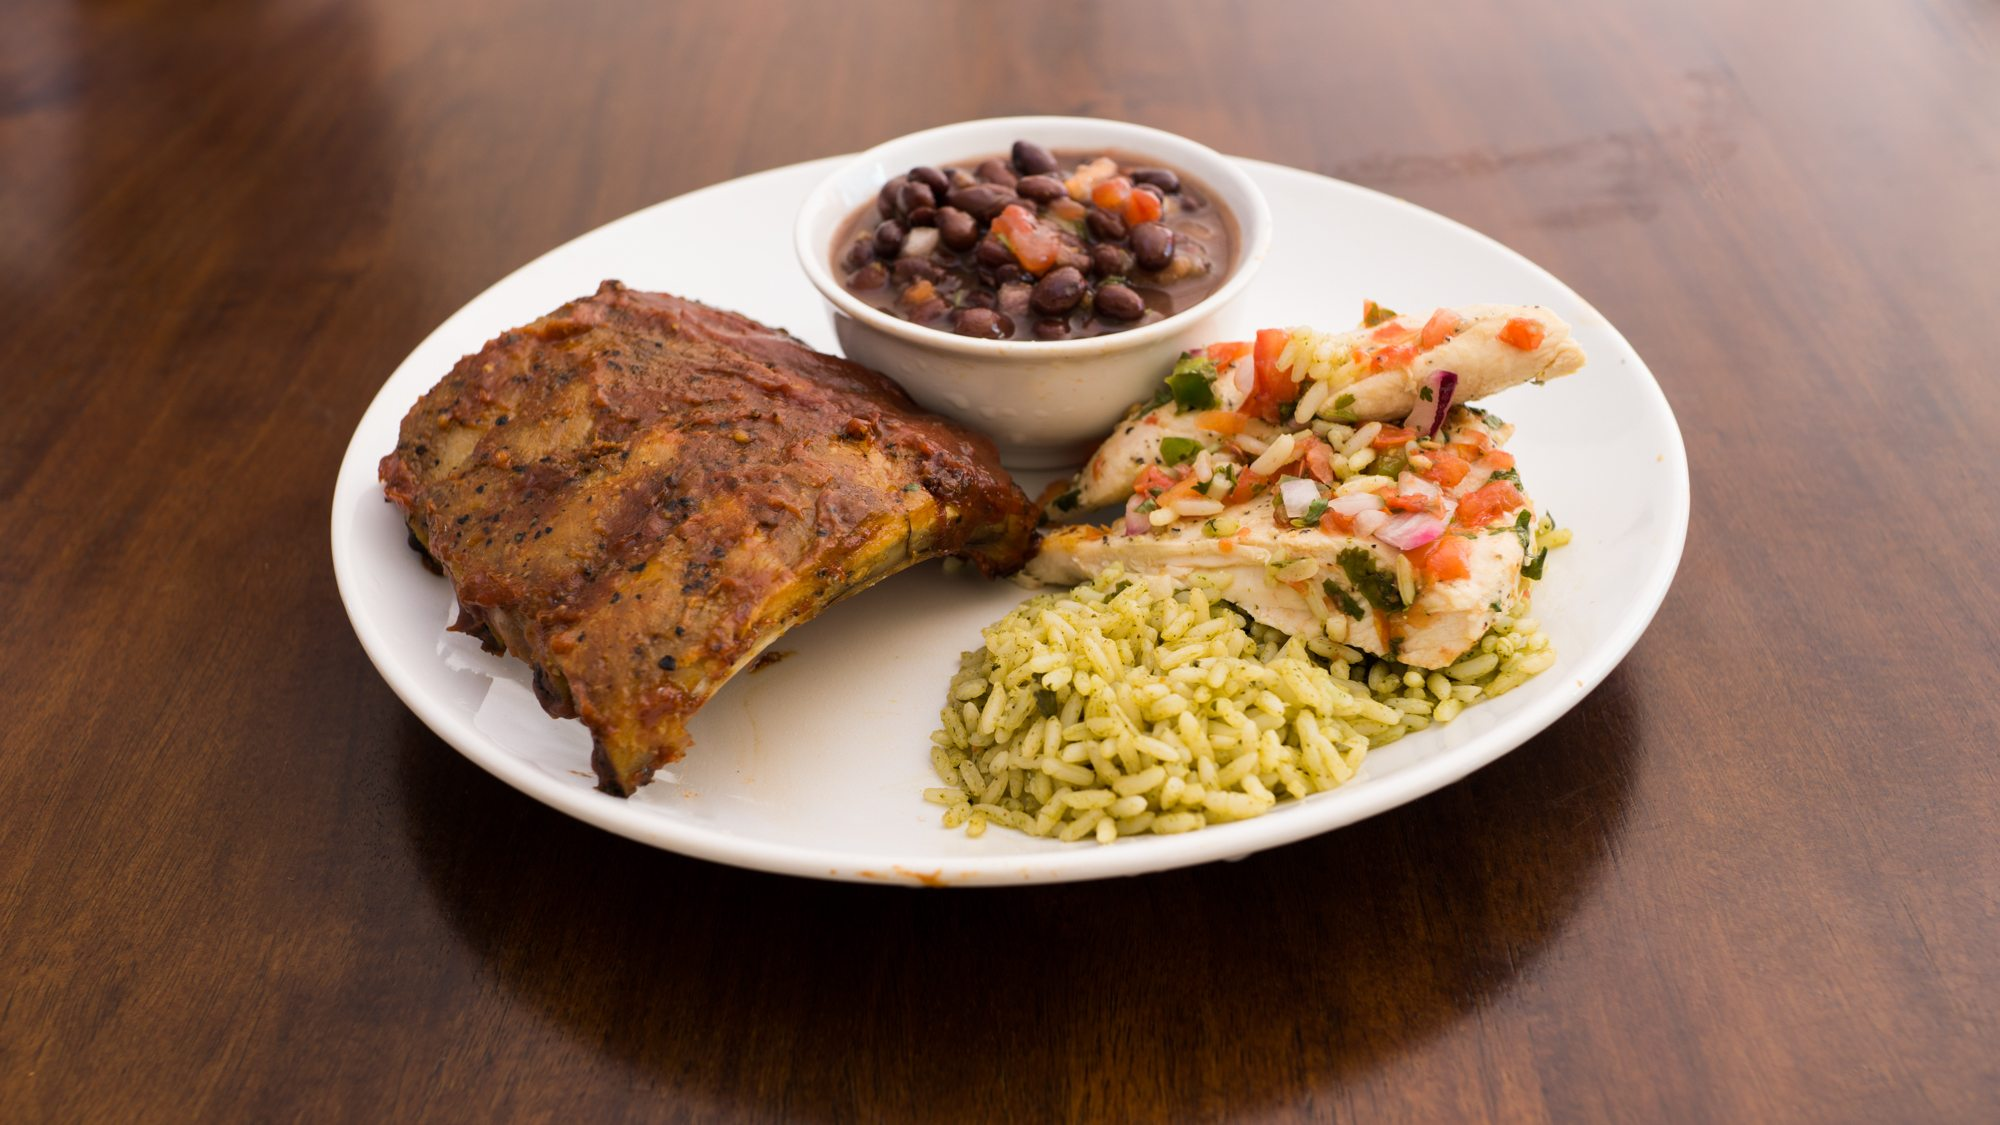 Chili's Grill and Bar Catering Plate